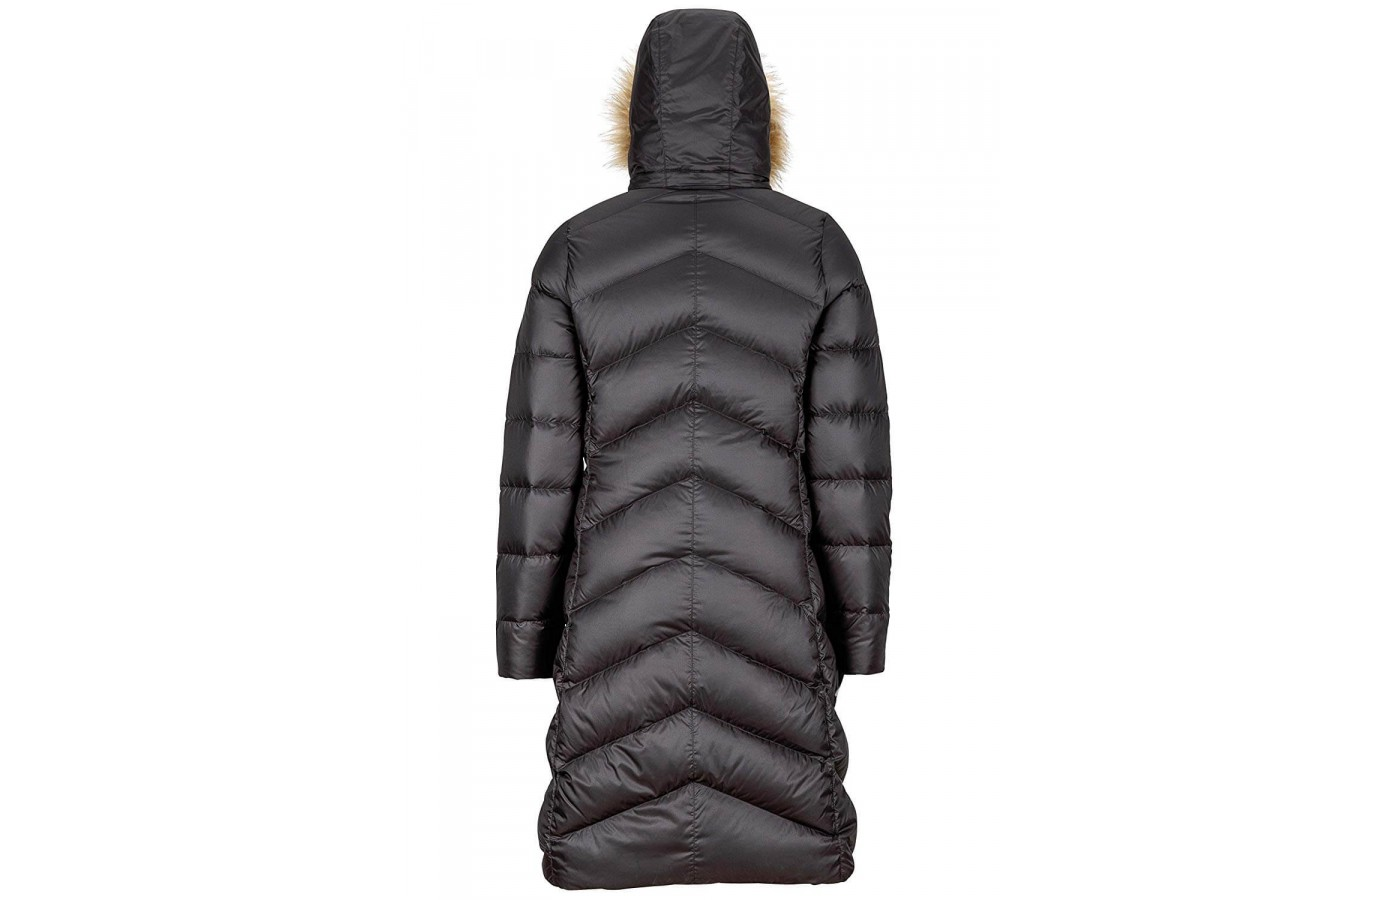 The knee-length coat with the hood on and fully zipped keeps the person inside seriously cozy.